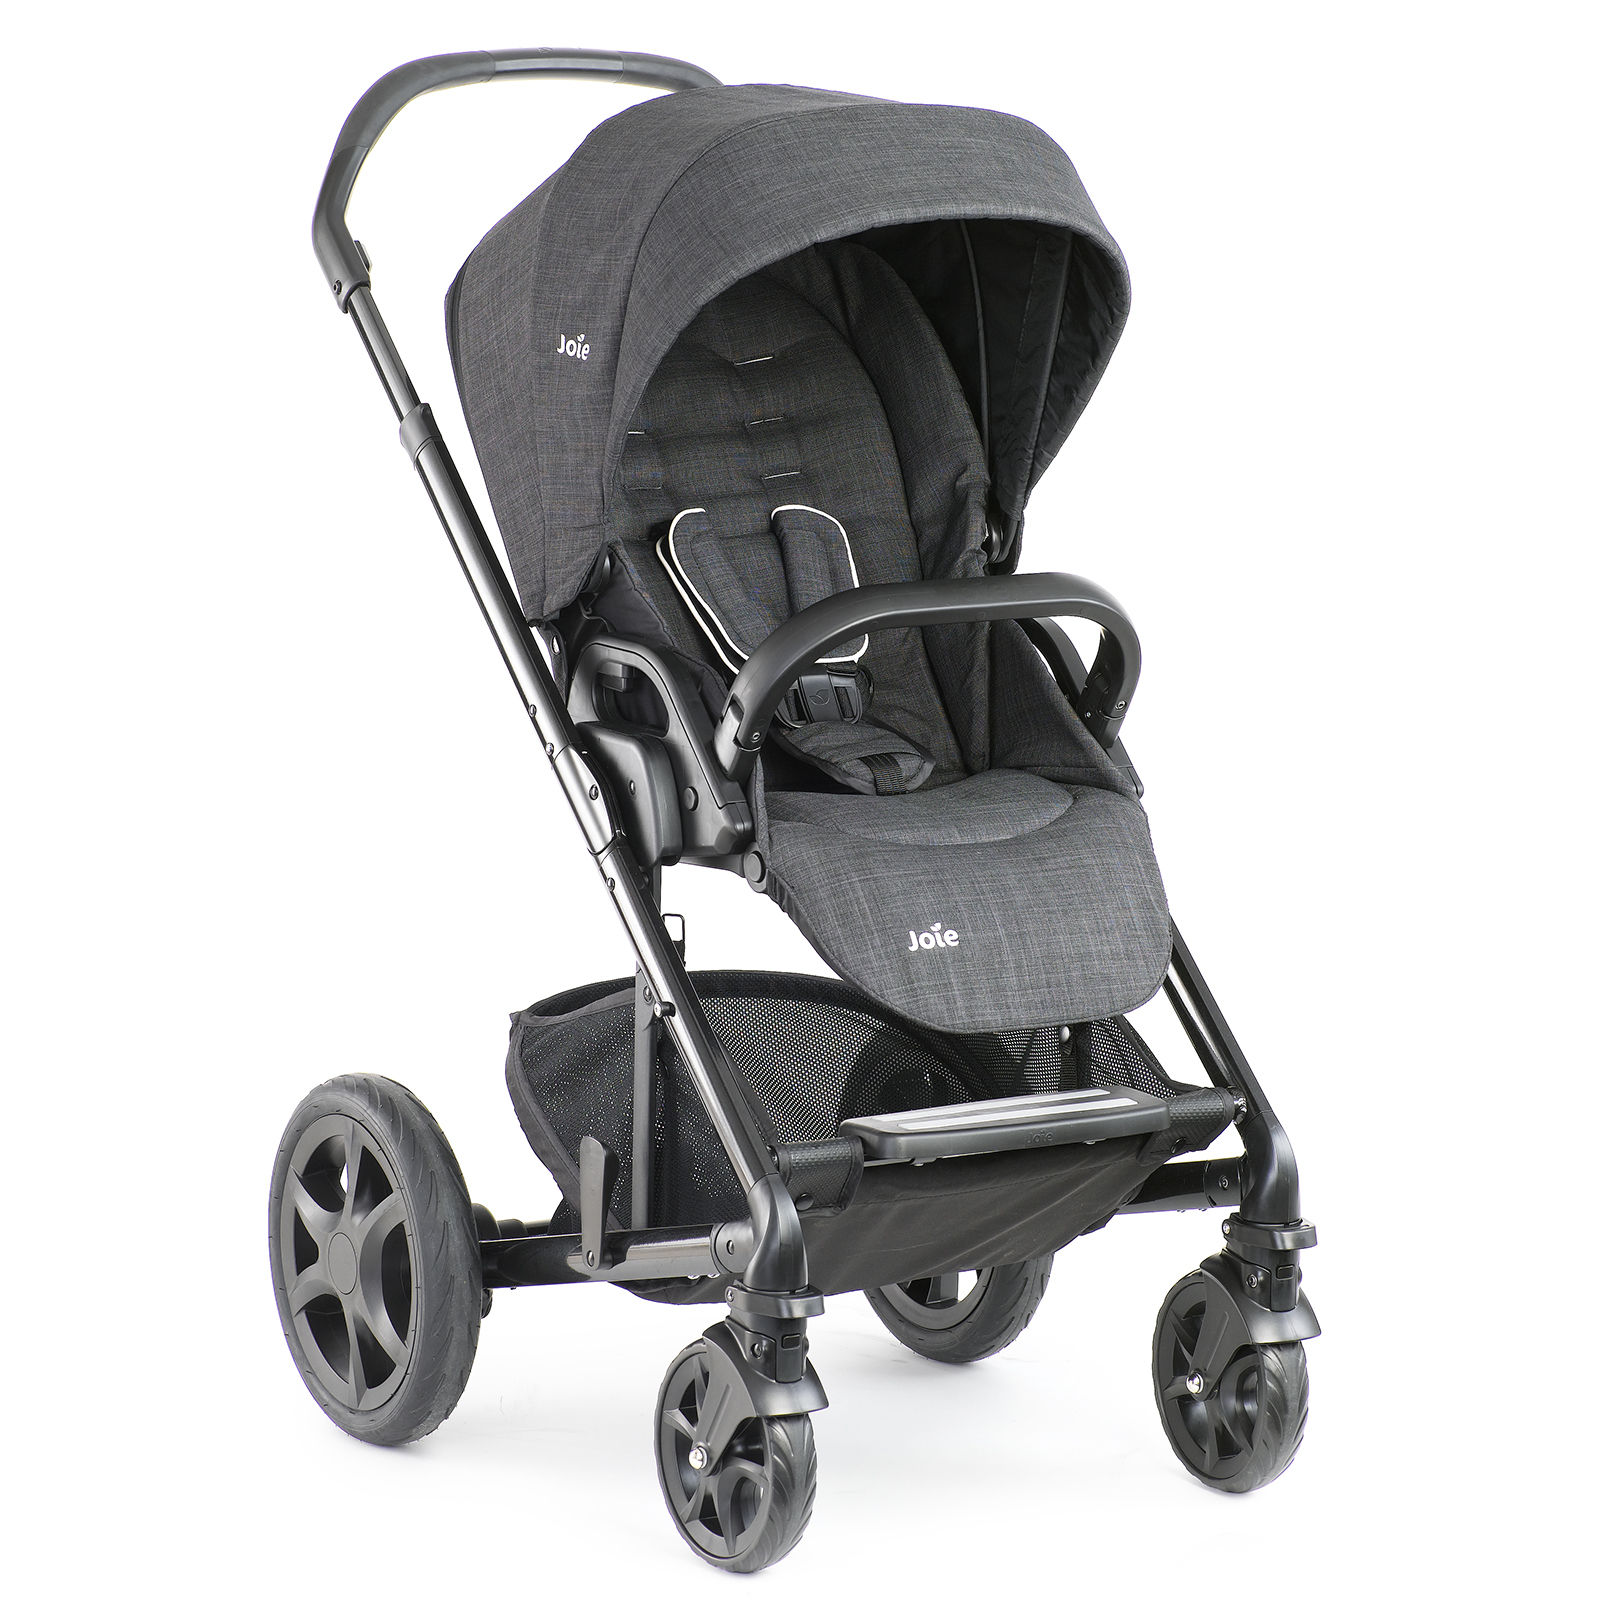 Joie Gemm Baby Car Seat Joie Chrome Dlx I Gemm Travel System Carrycot Inc